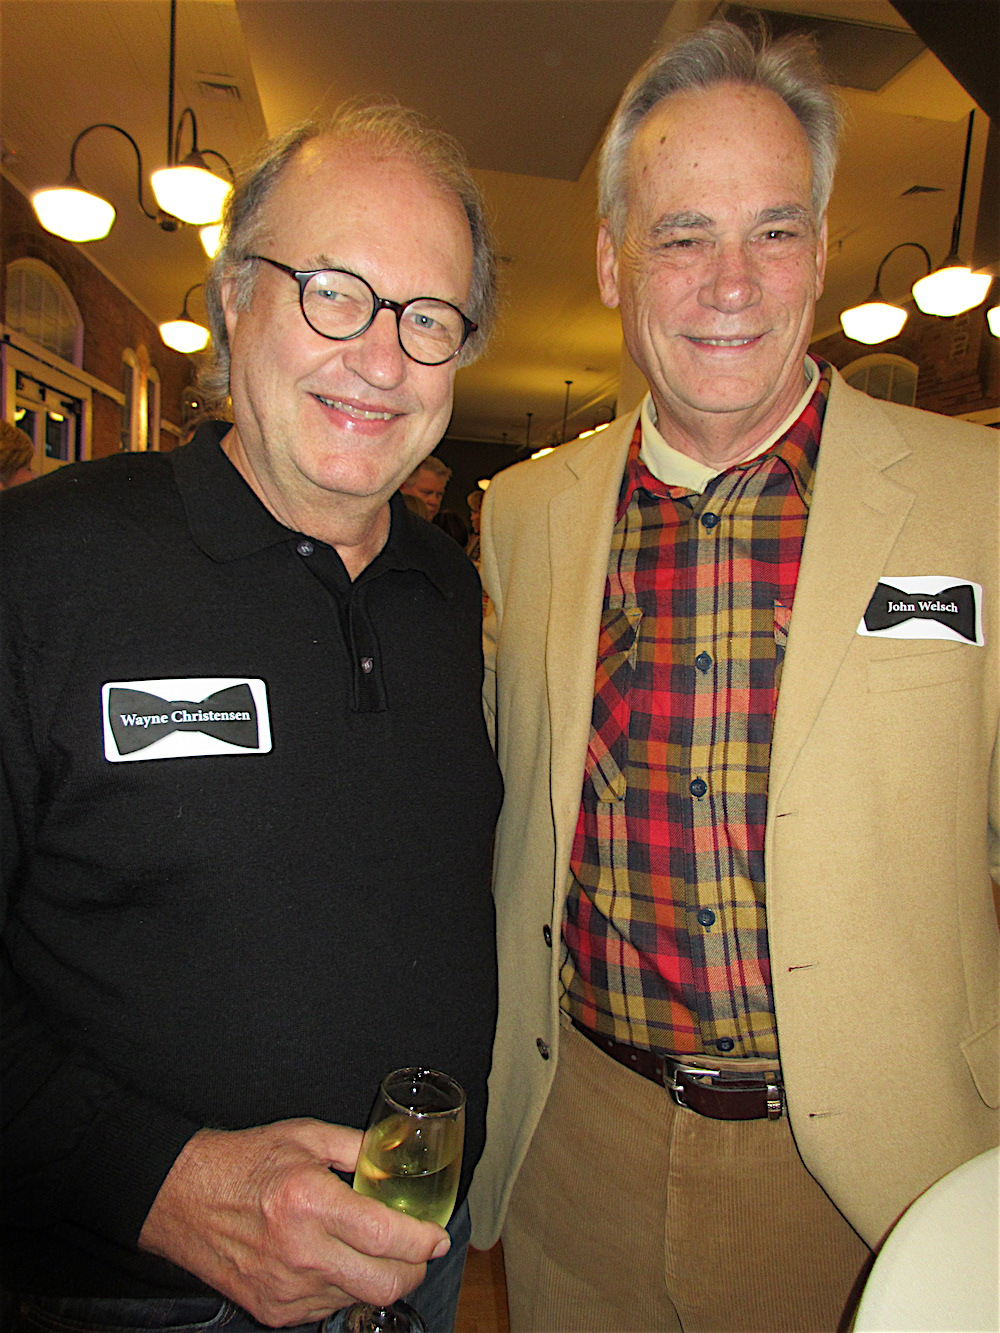 Wayne Christensen, left, with John Welsch.